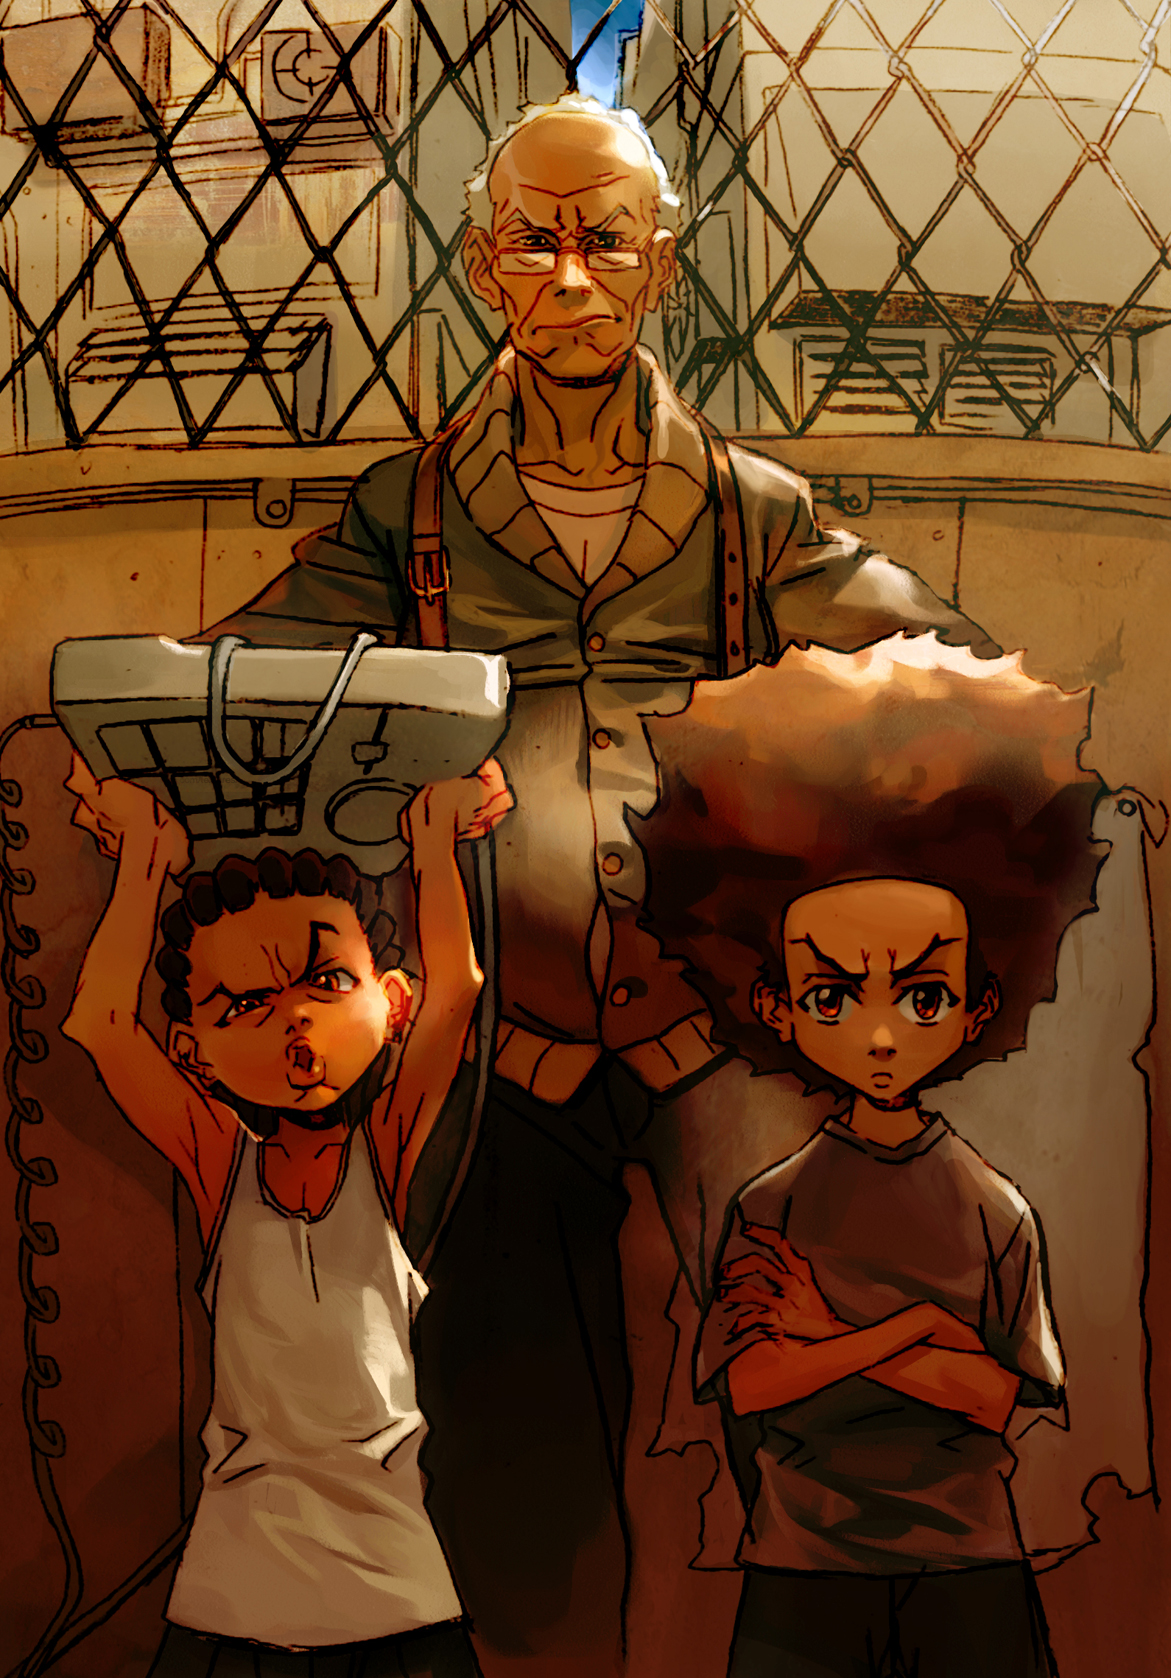 Boondocks Wallpaper Iphone - Wallpapersafari-7118